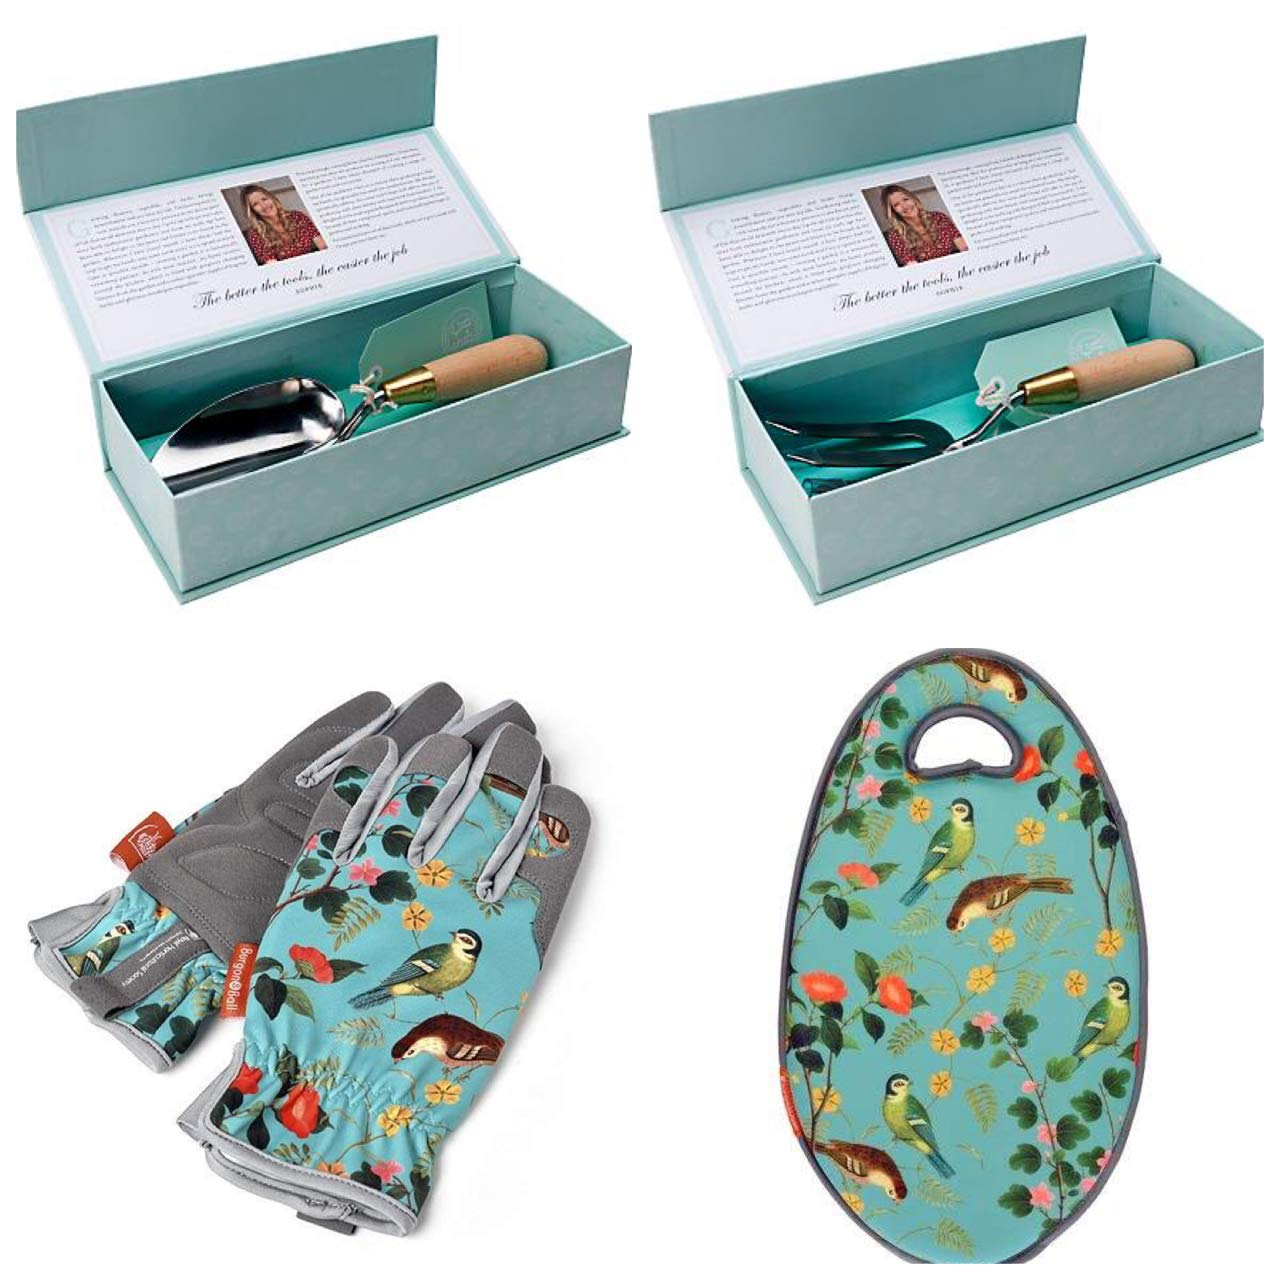 Burgon & Ball Sophie Conran -Luxury Gardening Tools Gift Set